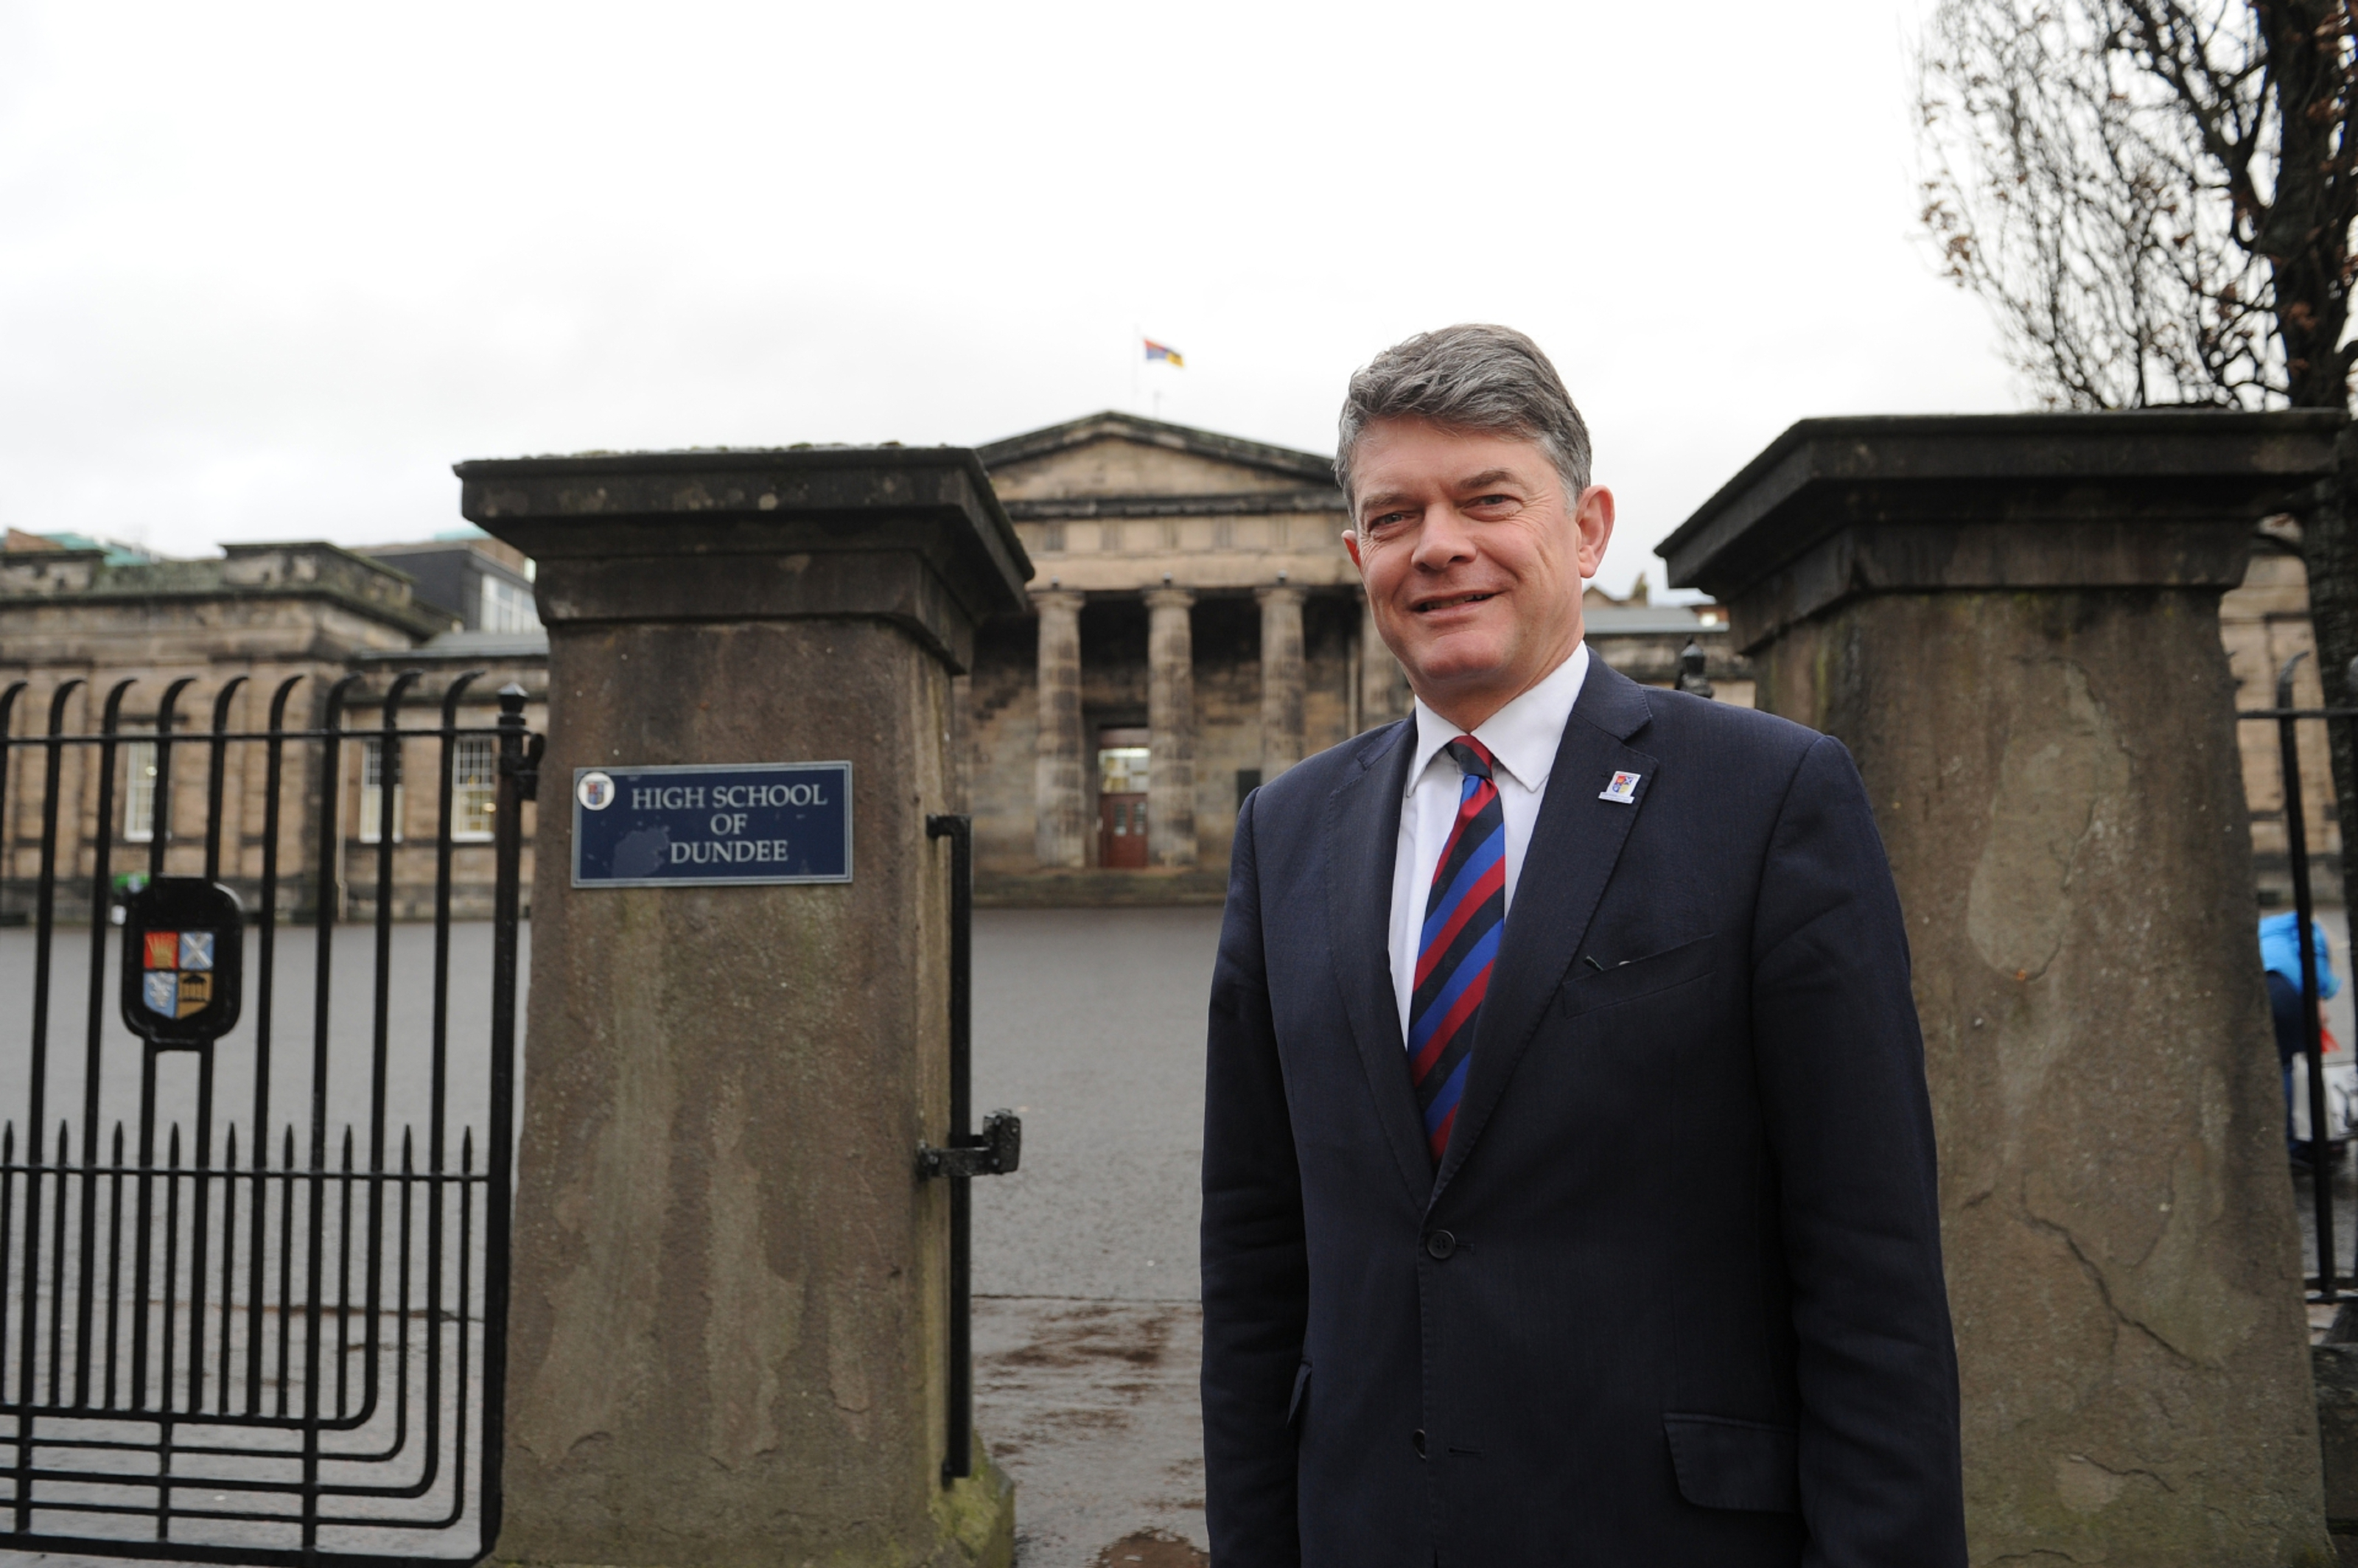 Dr John Halliday outside Dundee High School.